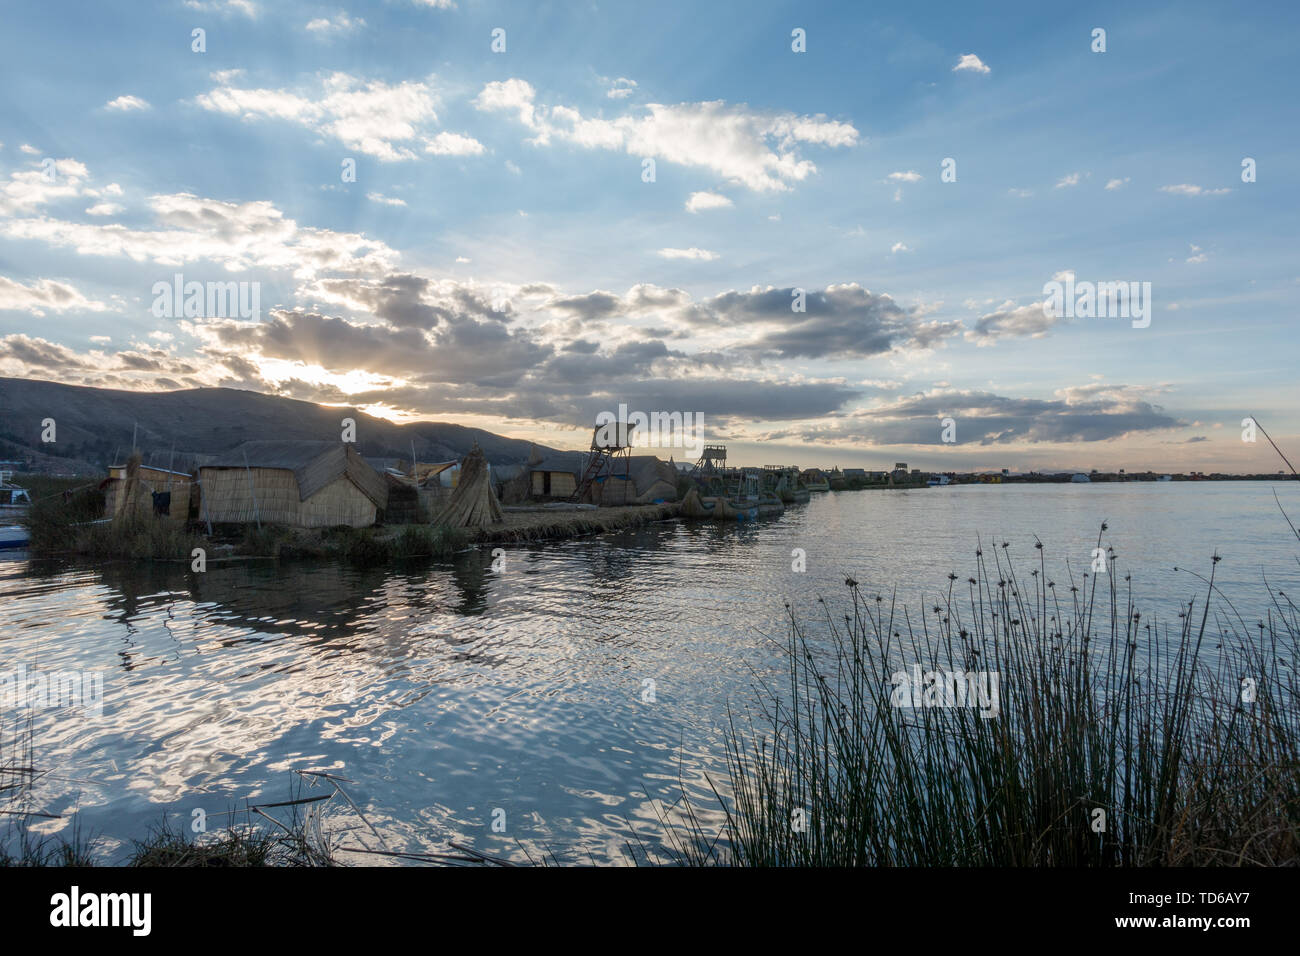 The titicaca lake and its floating villages. A high dynamic range image. - Stock Image